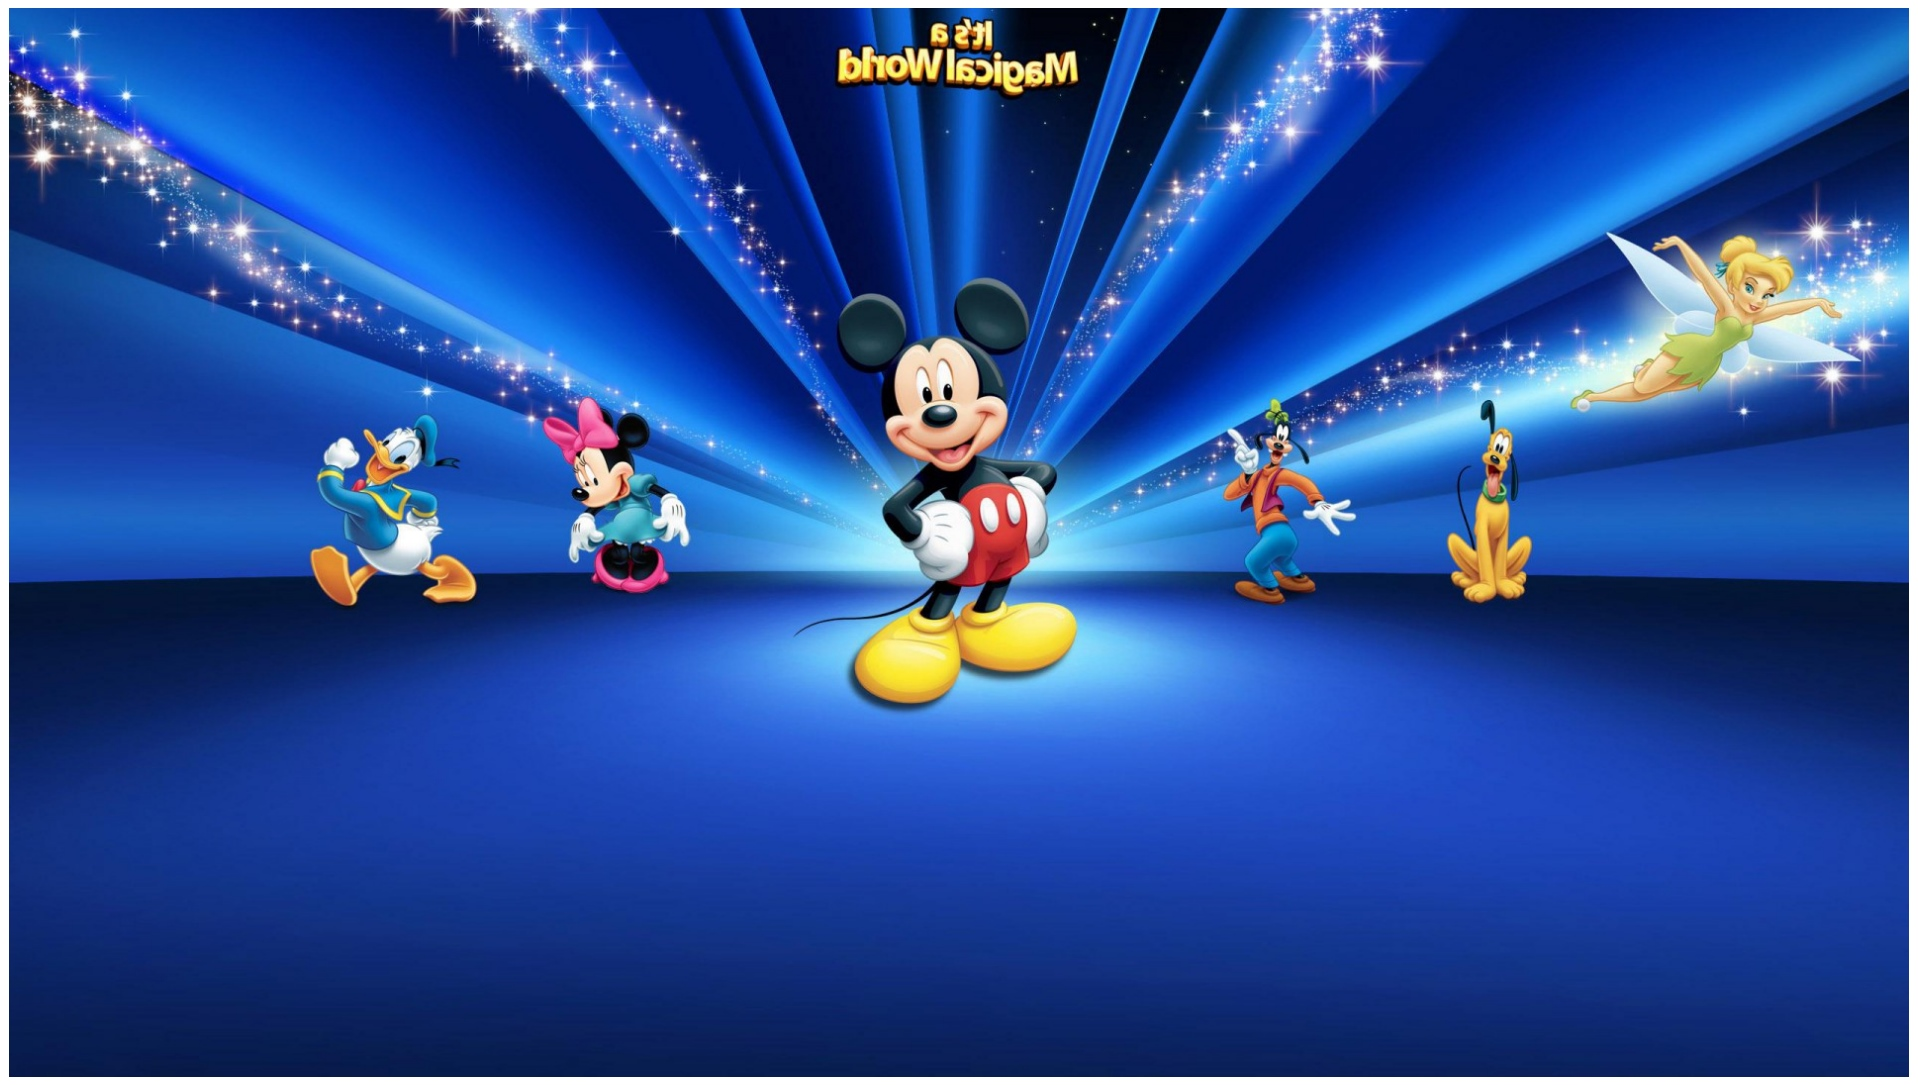 Cute Islamic Couples Hd Wallpapers Mickey Mouse Cartoons Hd Wallpapers Download Hd Walls